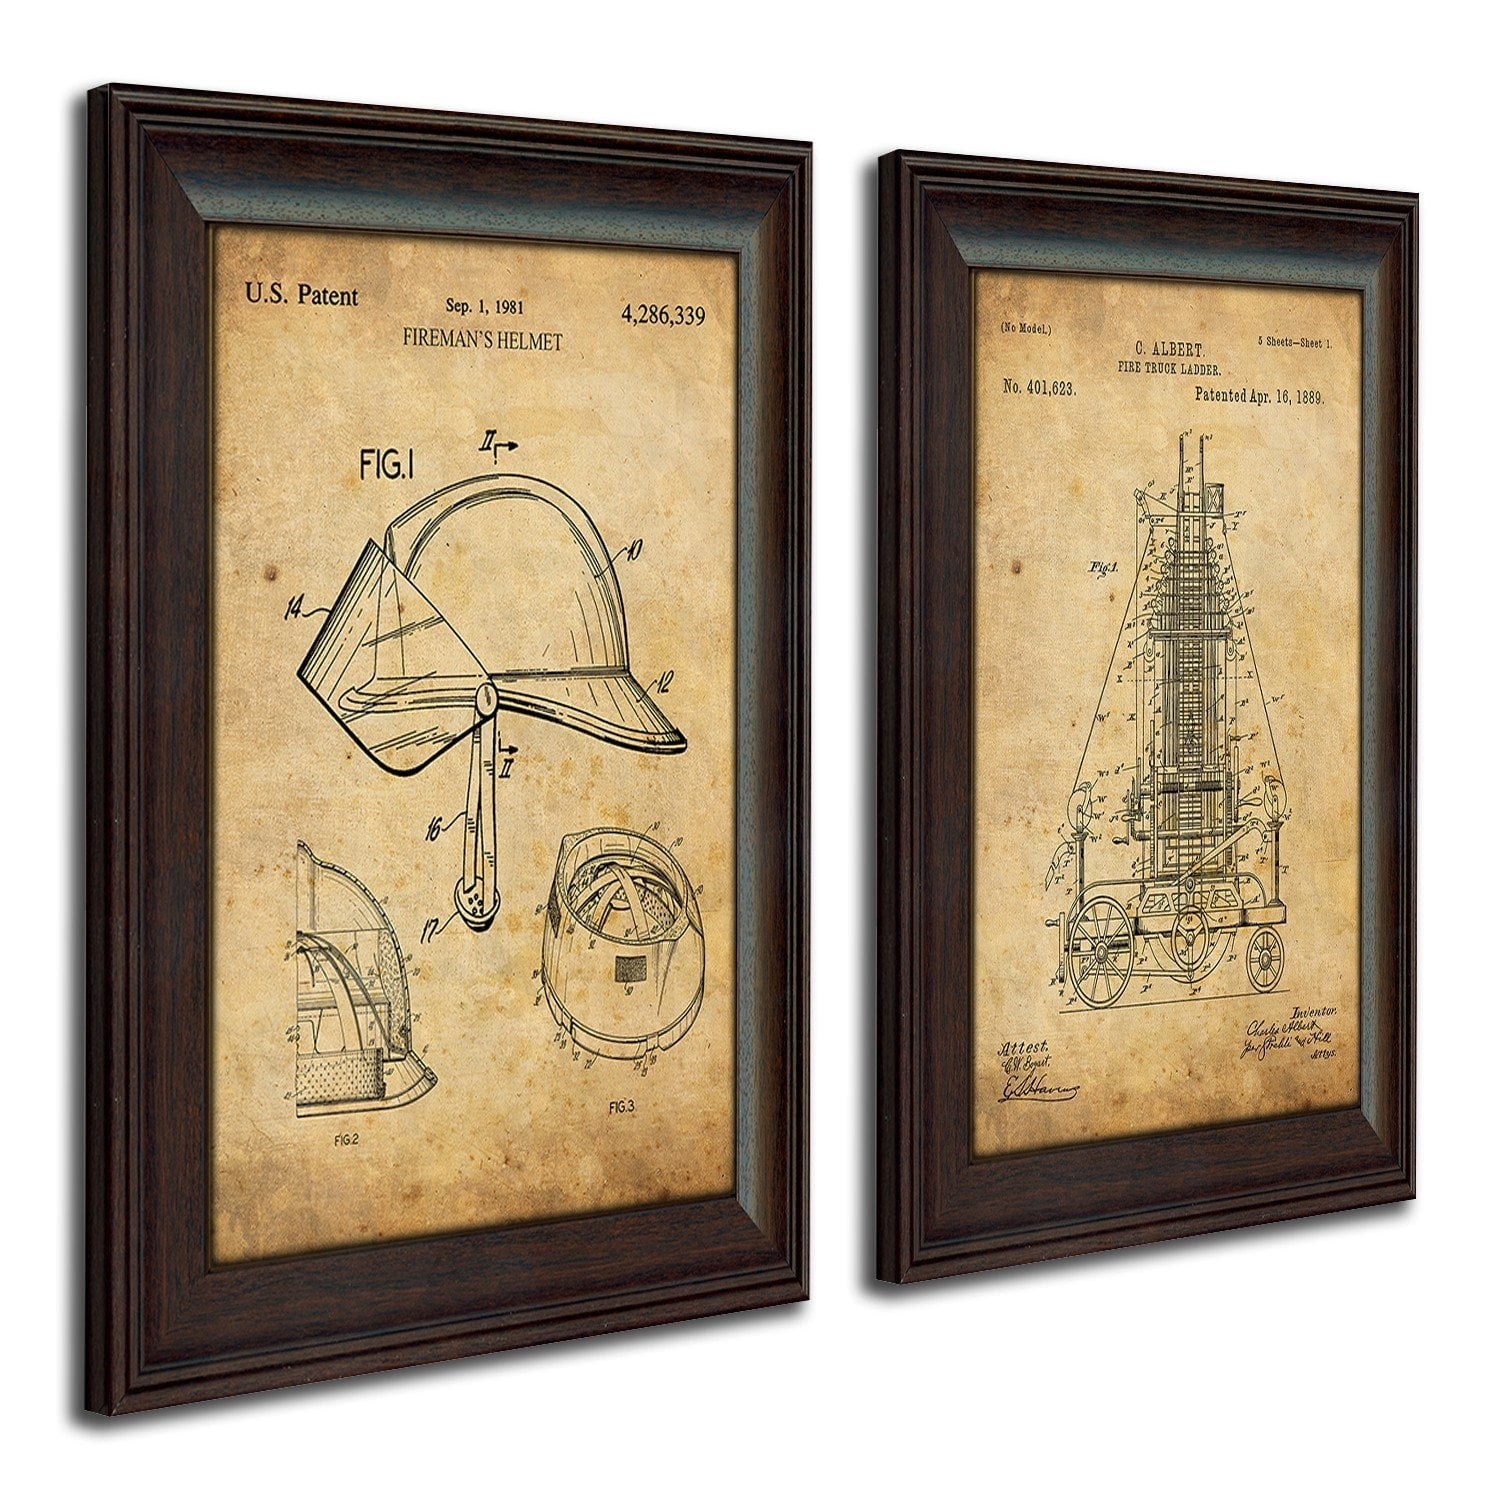 Unique Firefighter Wall Art Component - Art & Wall Decor - hecatalog ...